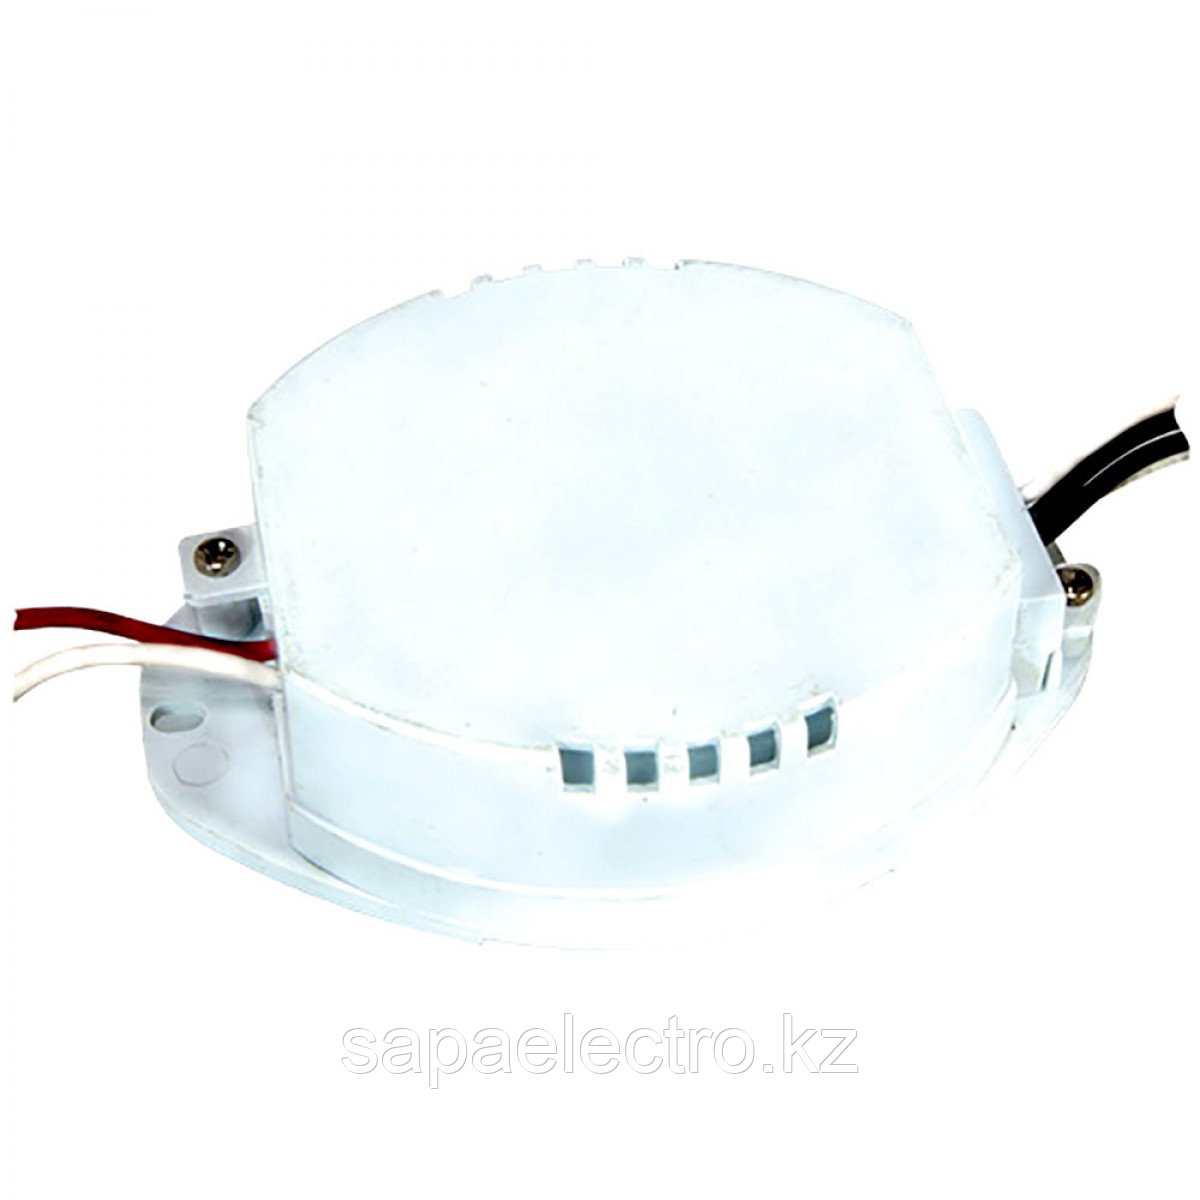 Дроссель ELECTRONIC  BALL. T6/T5 55W(FOR BELIS/PLE